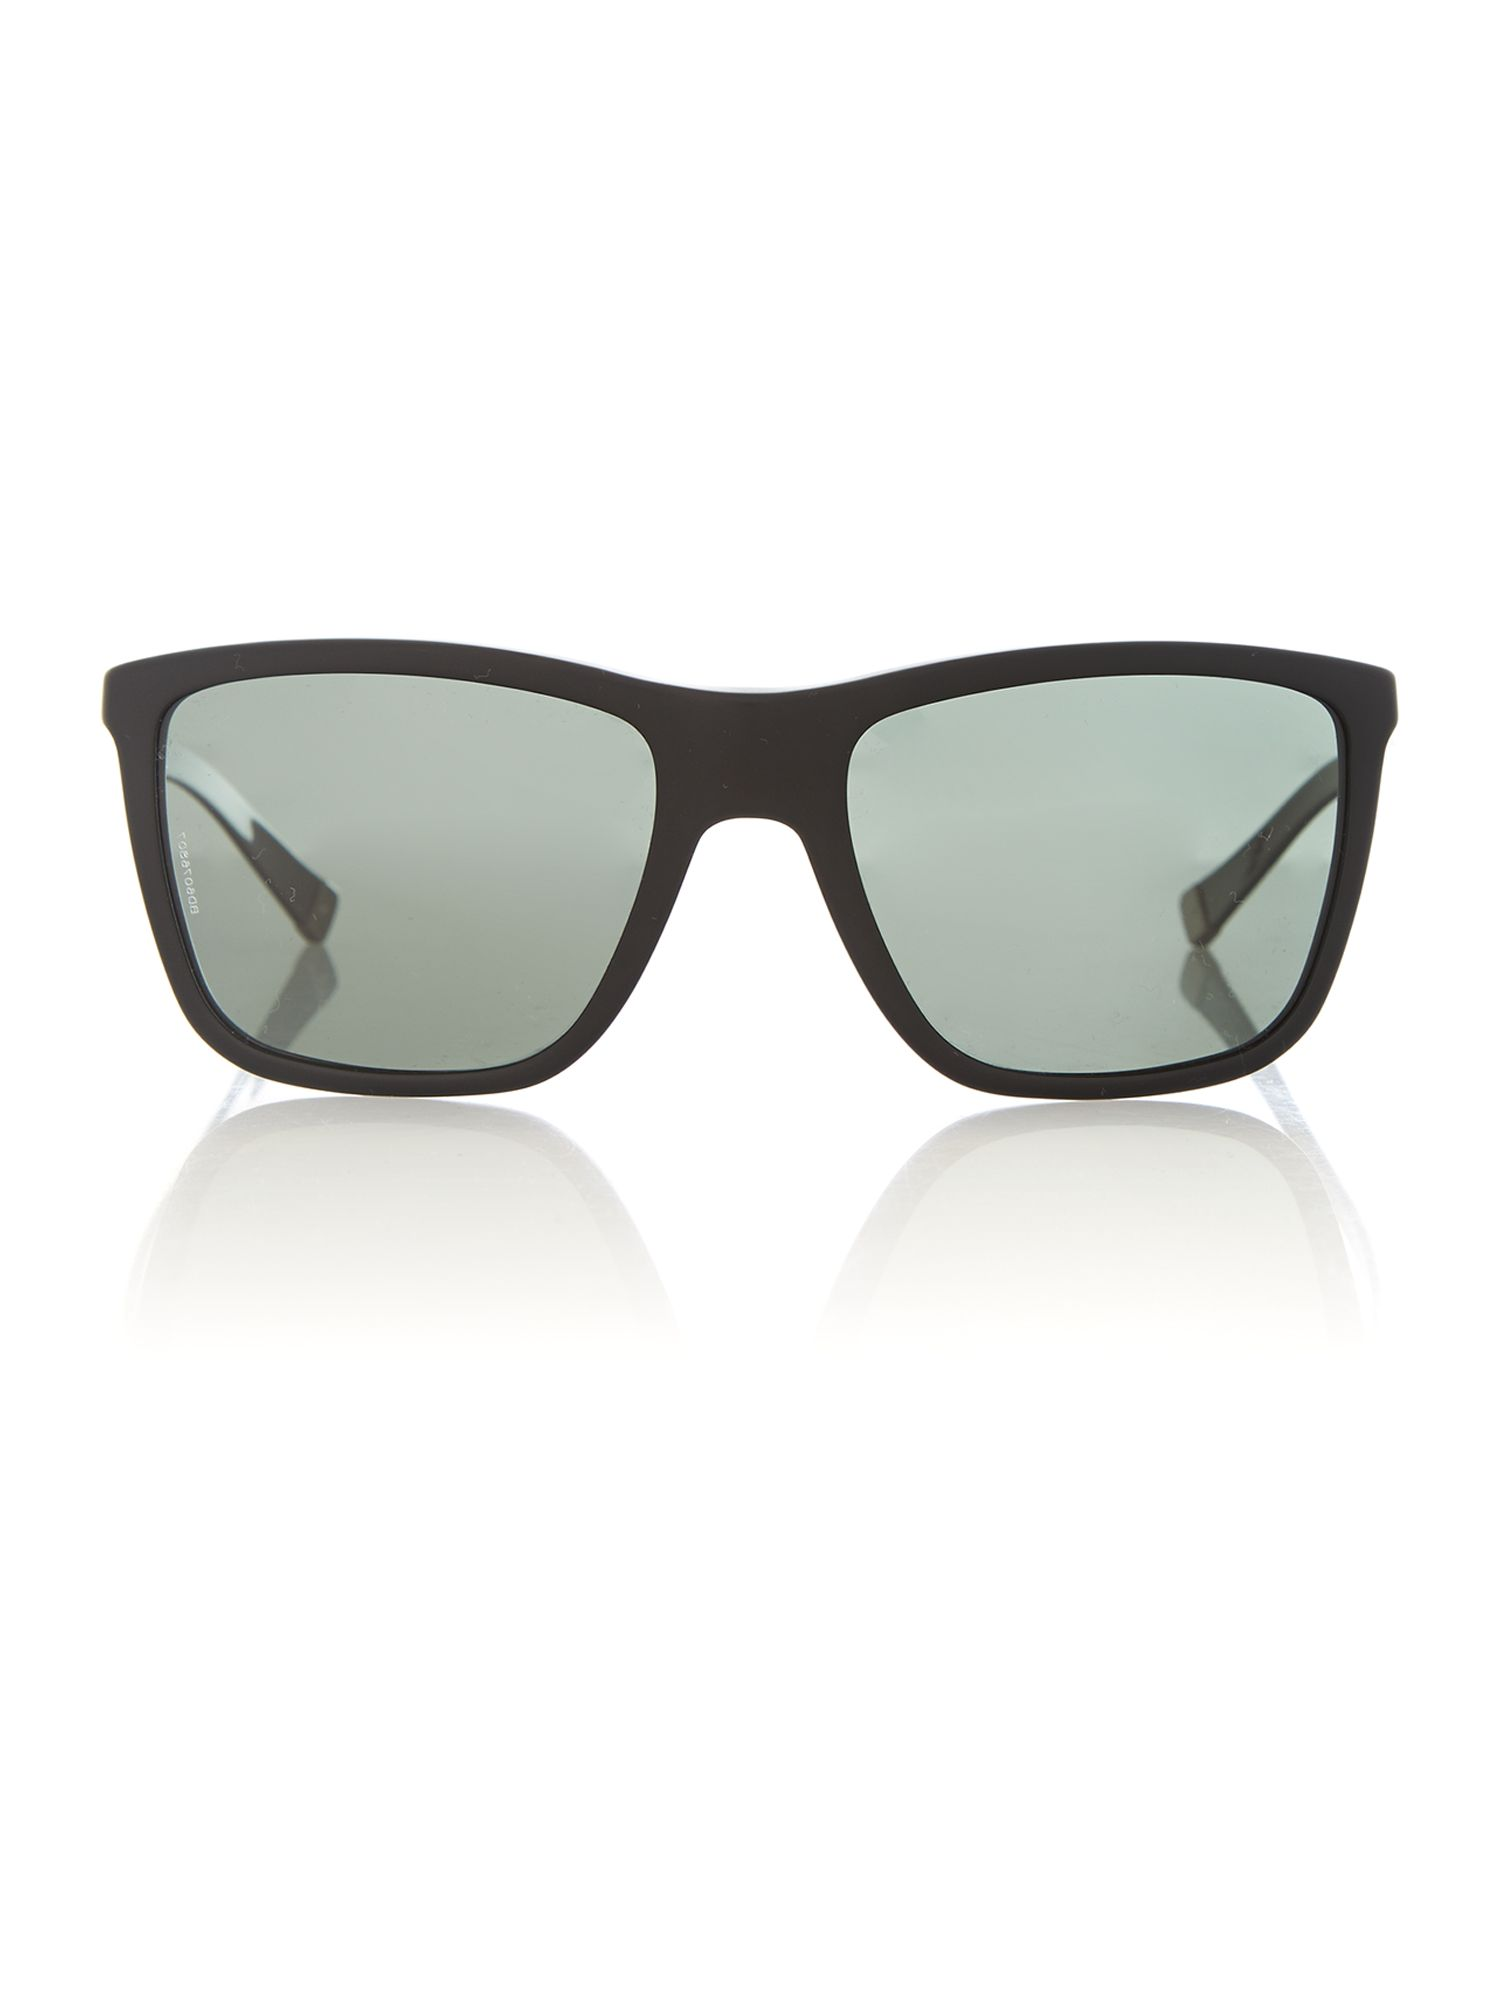 Men`s square sunglasses